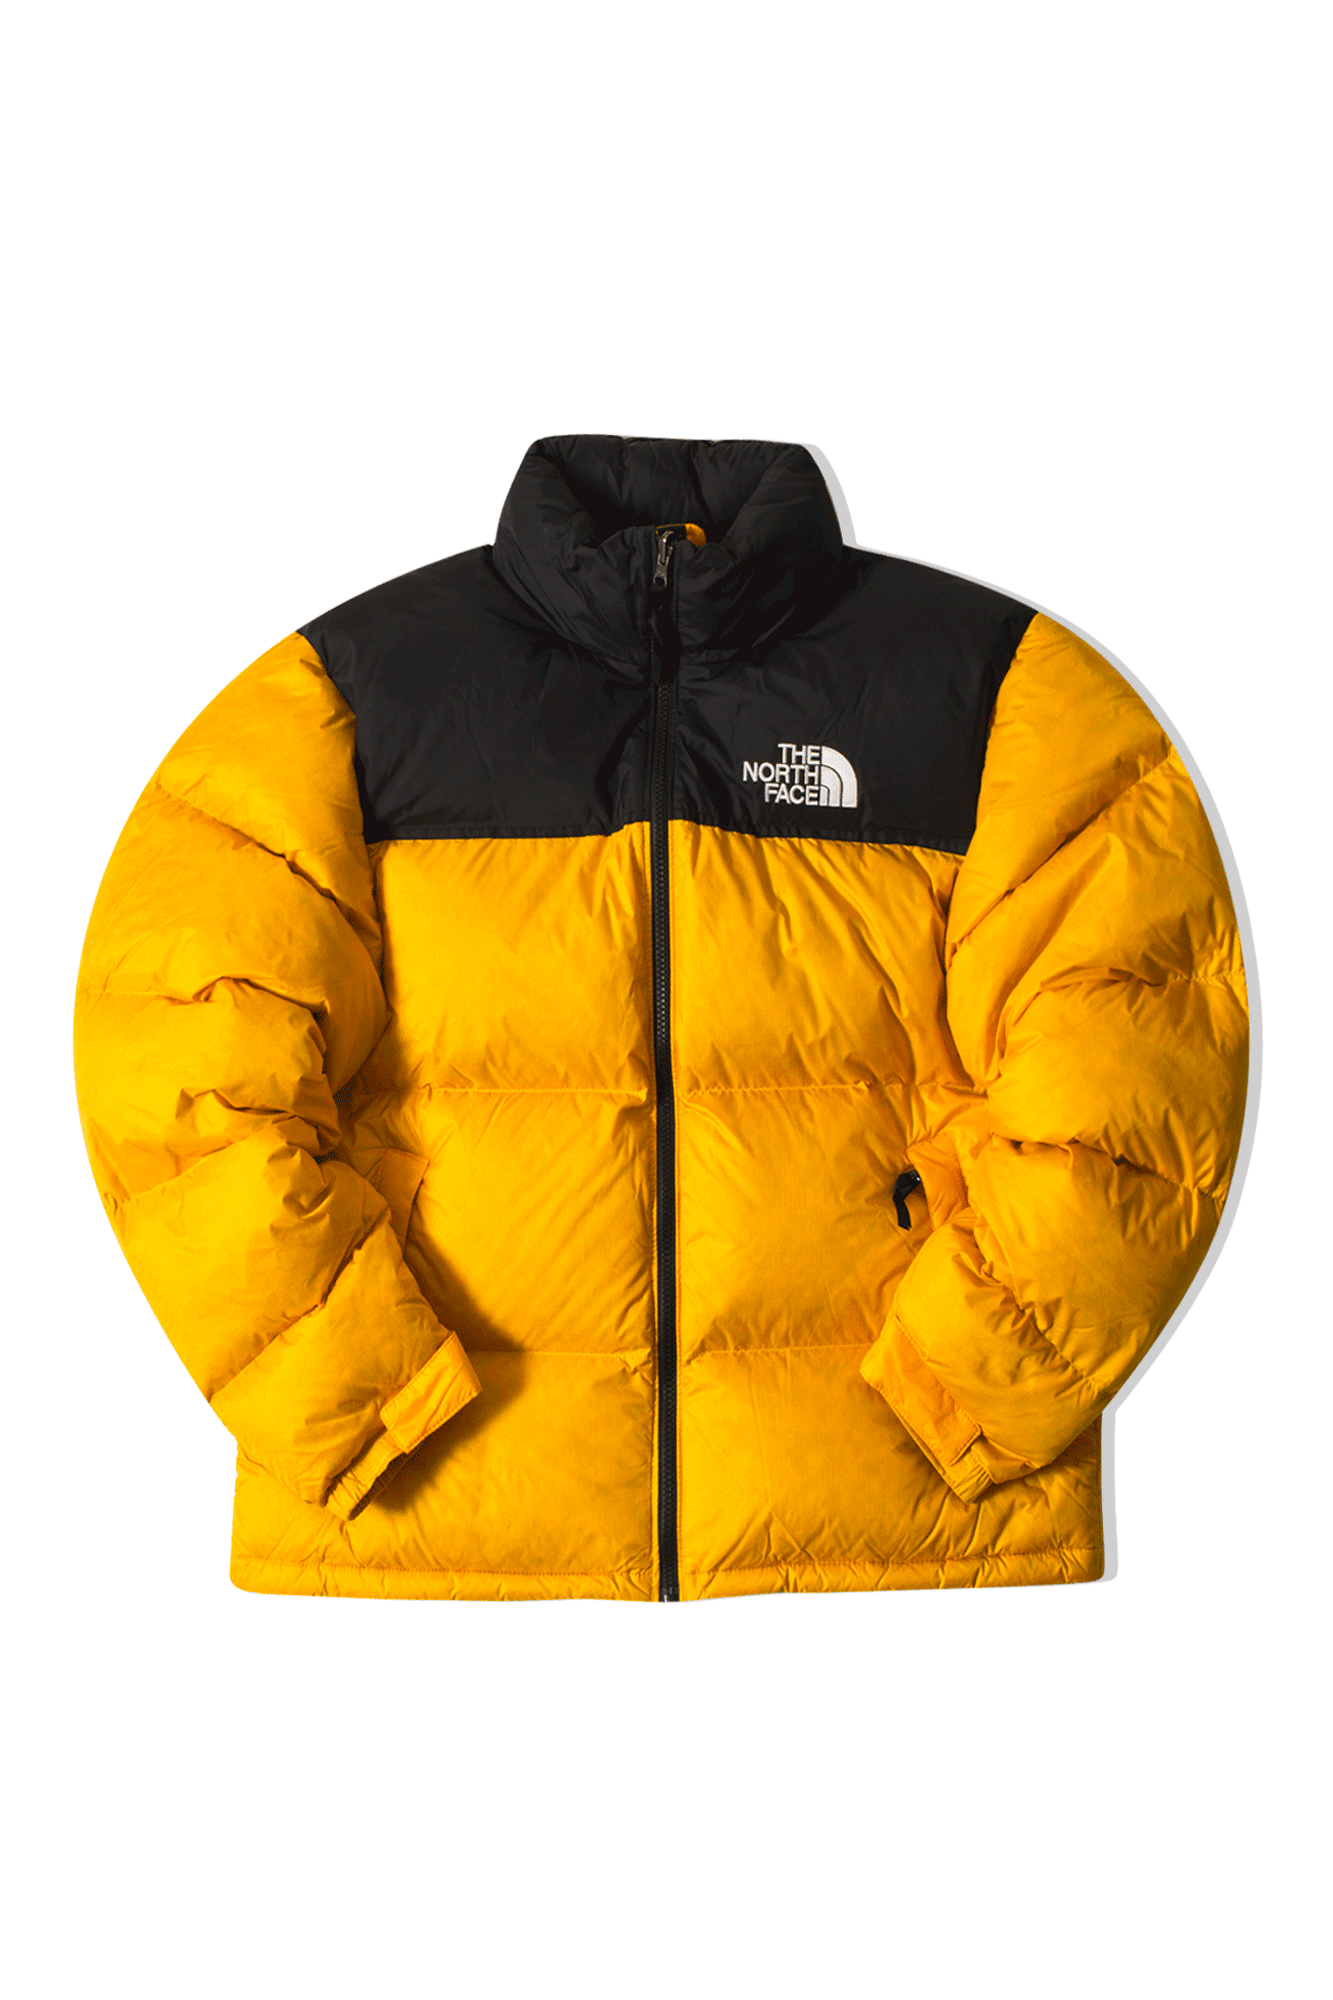 The North Face Giacche & Cappotti M 1996 Retro Nuptse Jacket Giallo T93C8D70M#000#70M#XS - One Block Down